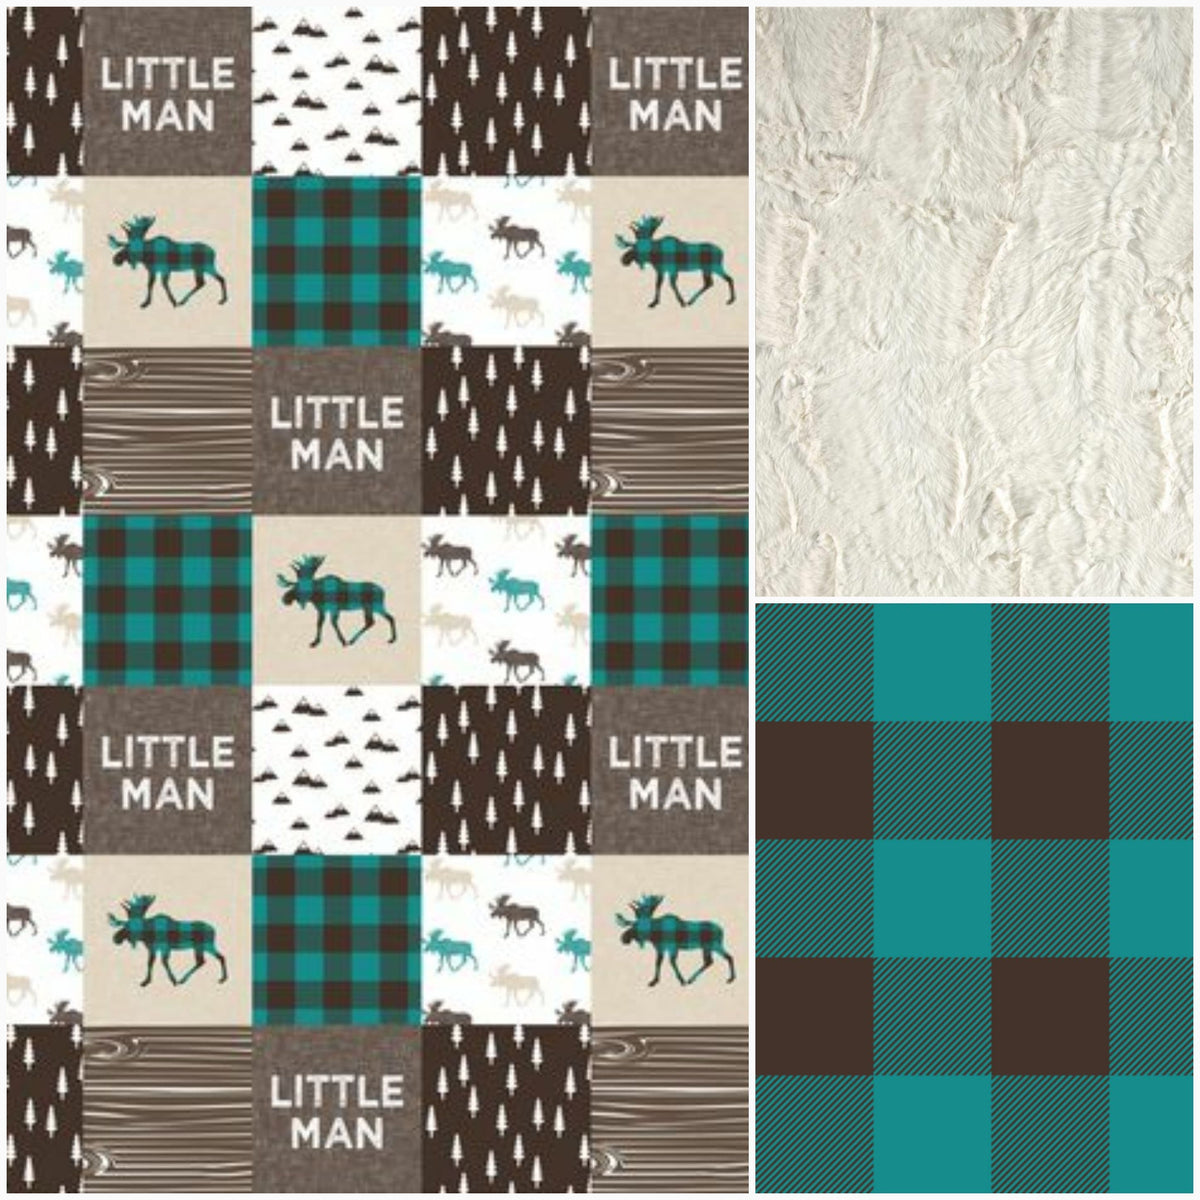 Custom Boy Crib Bedding - Little Man Moose, Teal Buffalo Check, and Brown, Little Man Moose Crib Bedding